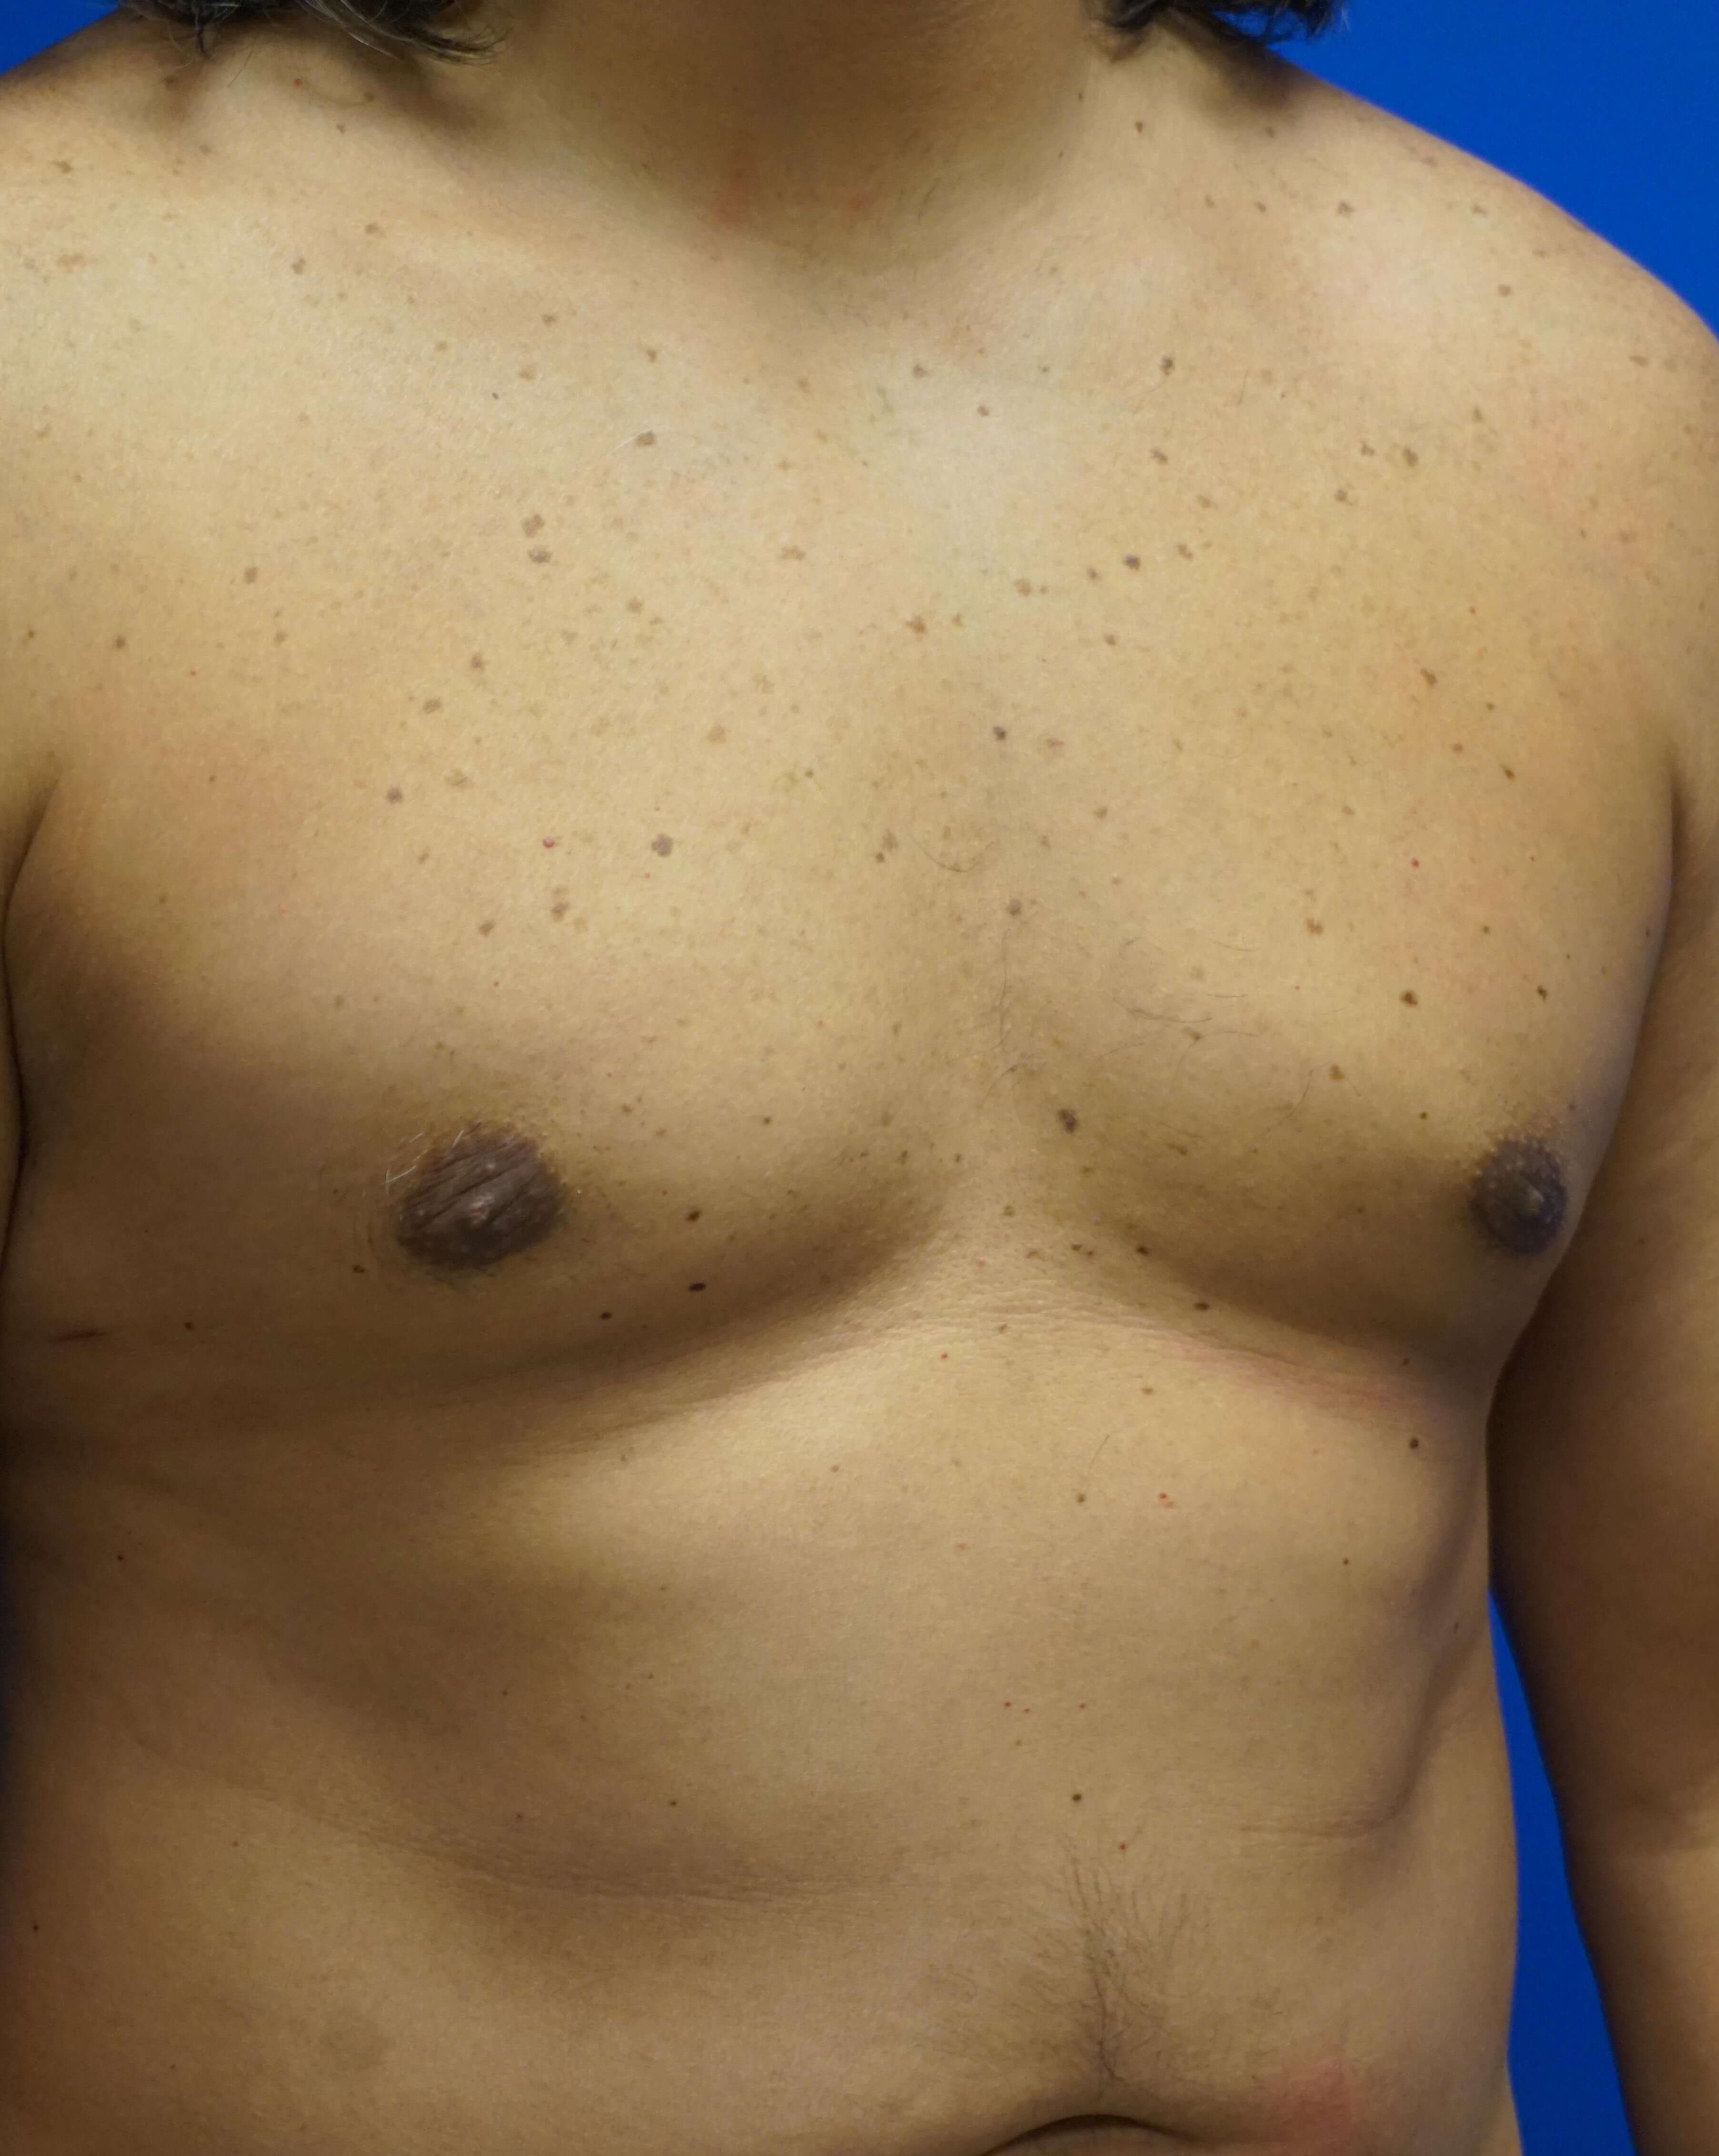 Treatment of Gynecomastia 3 months postop